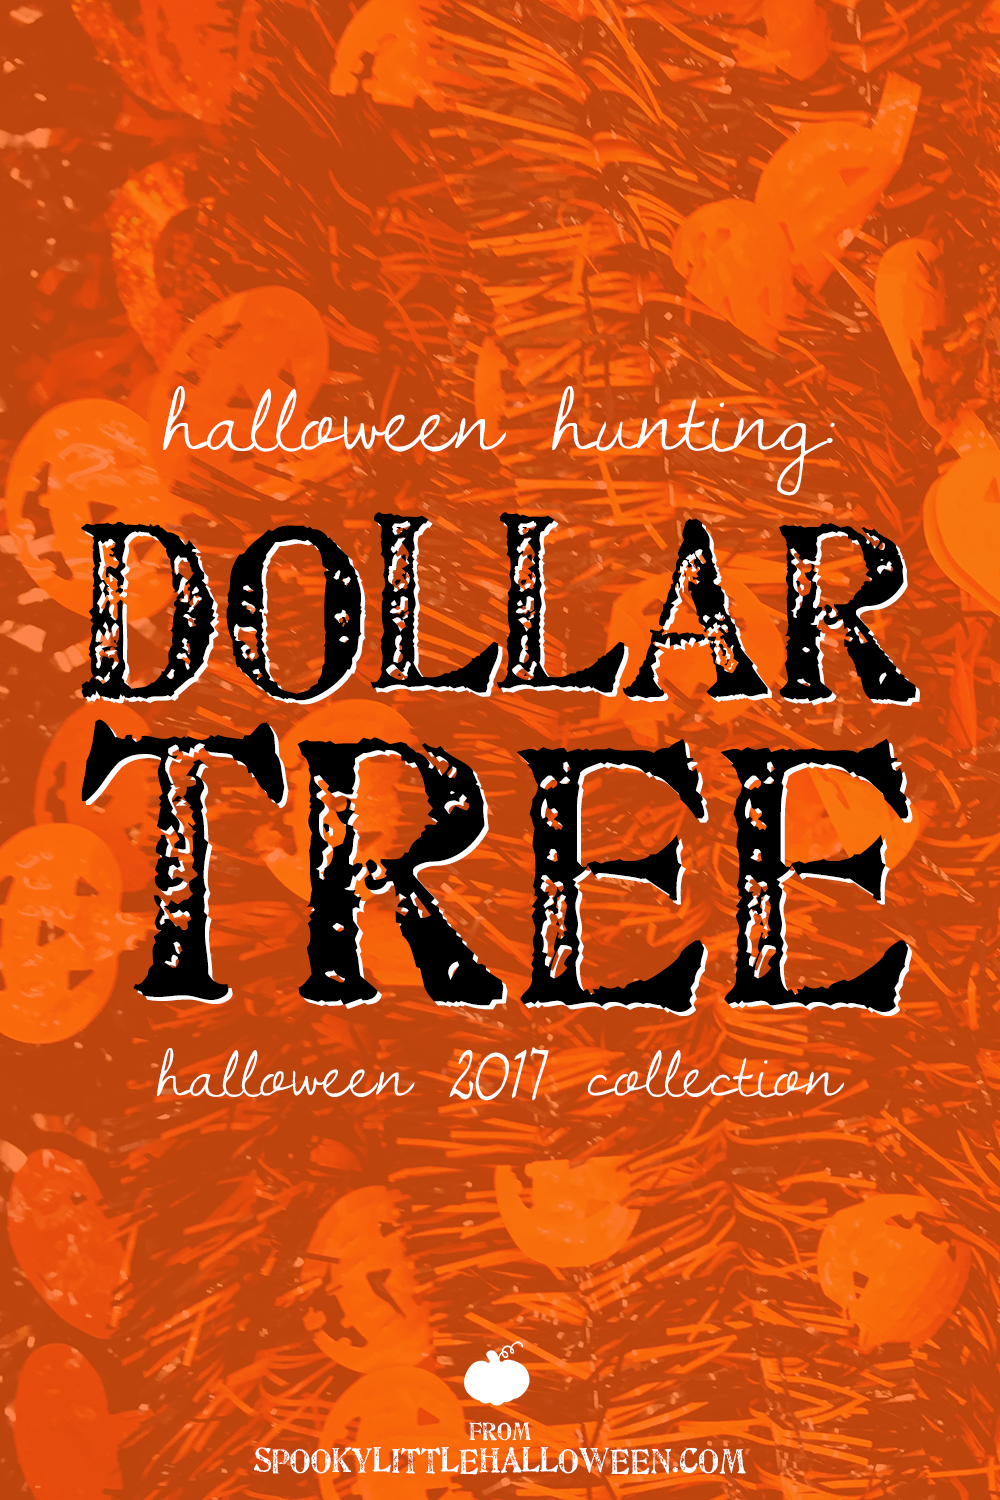 Wondrous Halloween Hunting Dollar Tree Halloween 2017 Collection Ncnpc Chair Design For Home Ncnpcorg